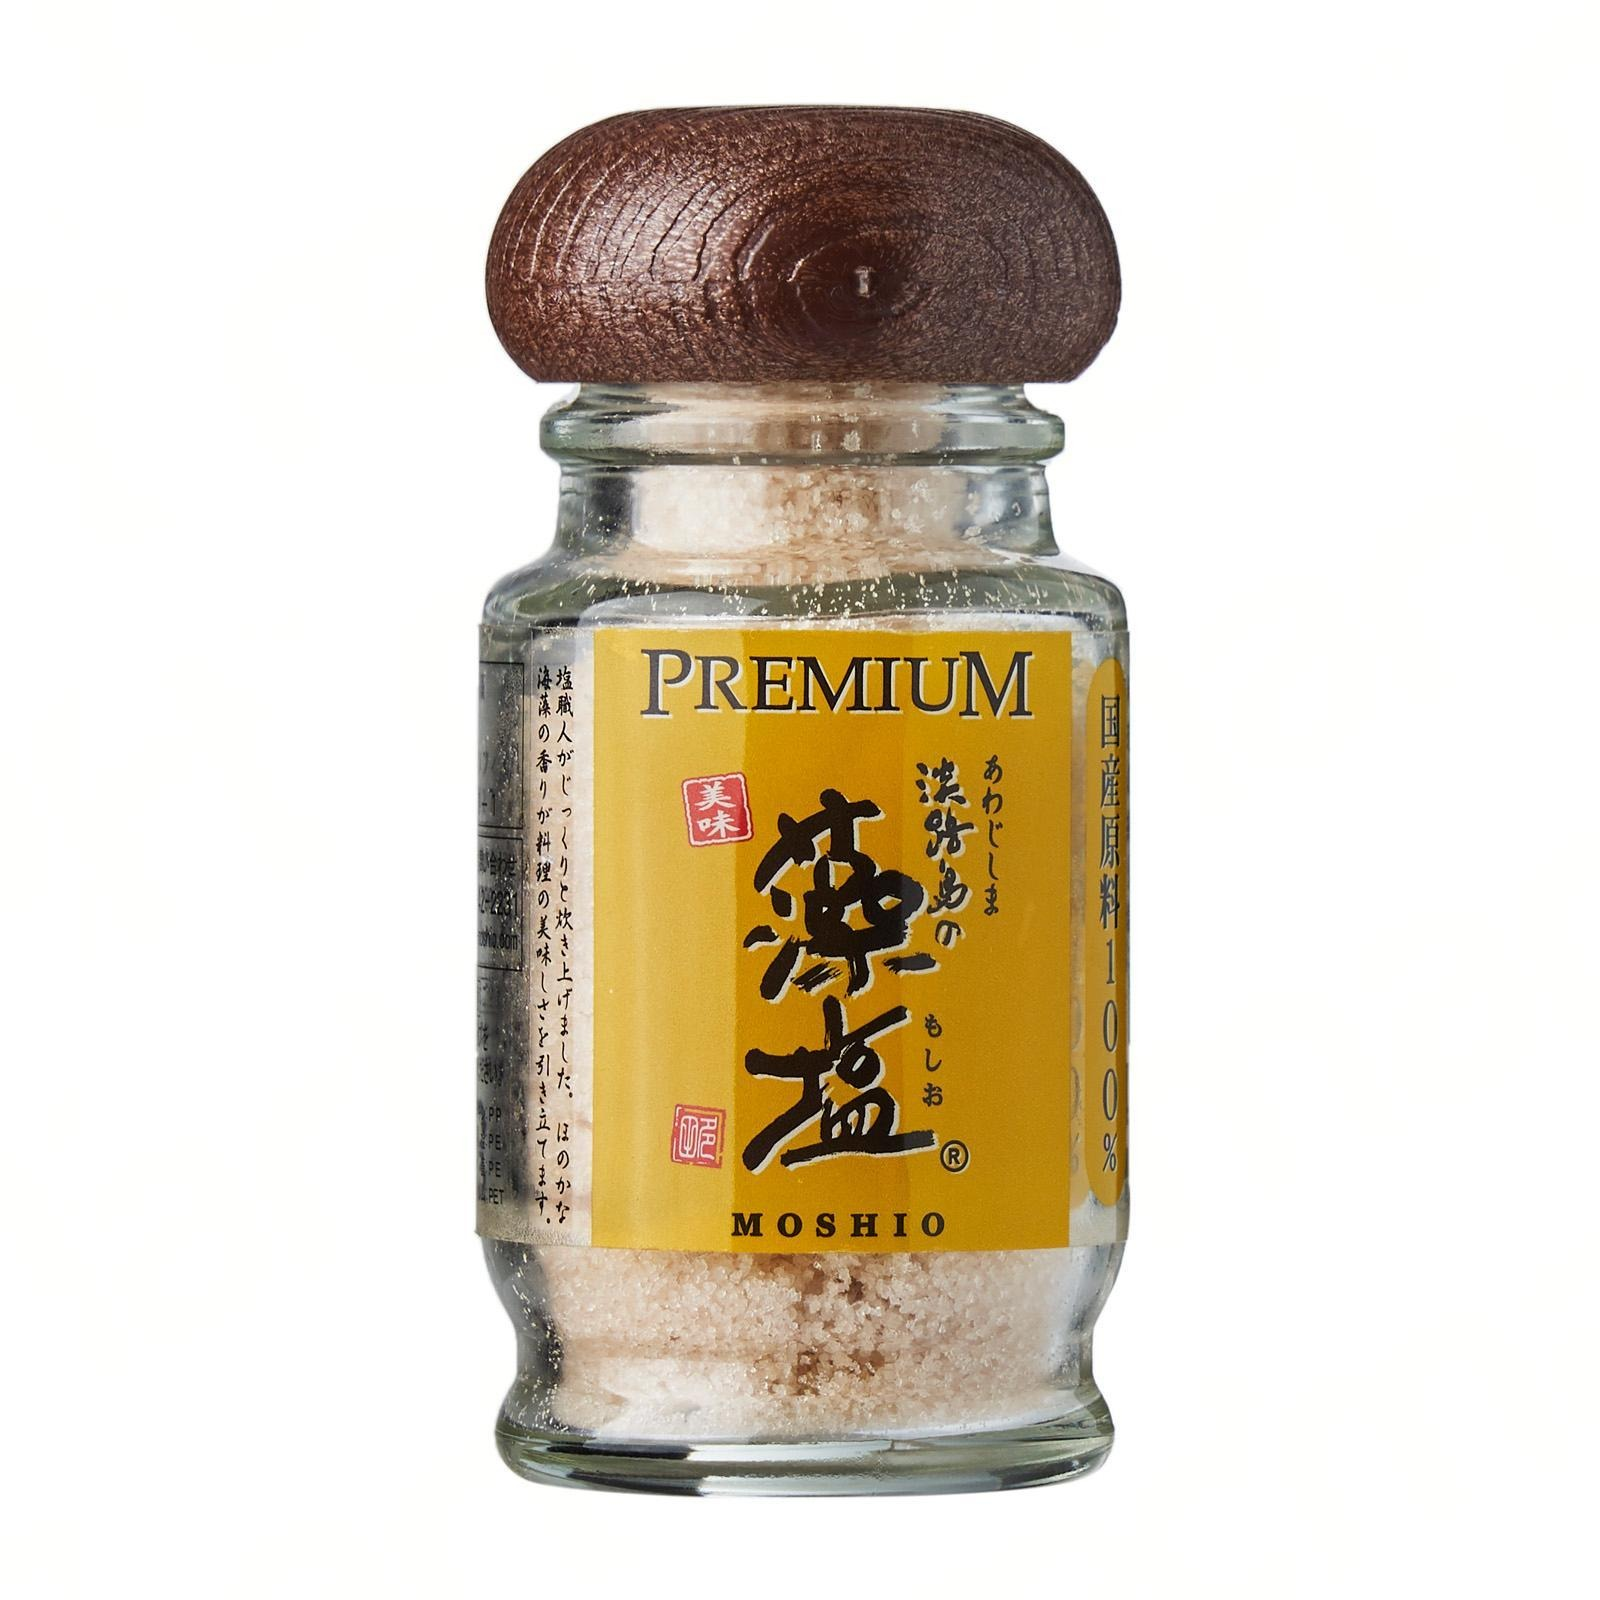 Kirei Premium Moshio Traditional Japanese Sea Salt